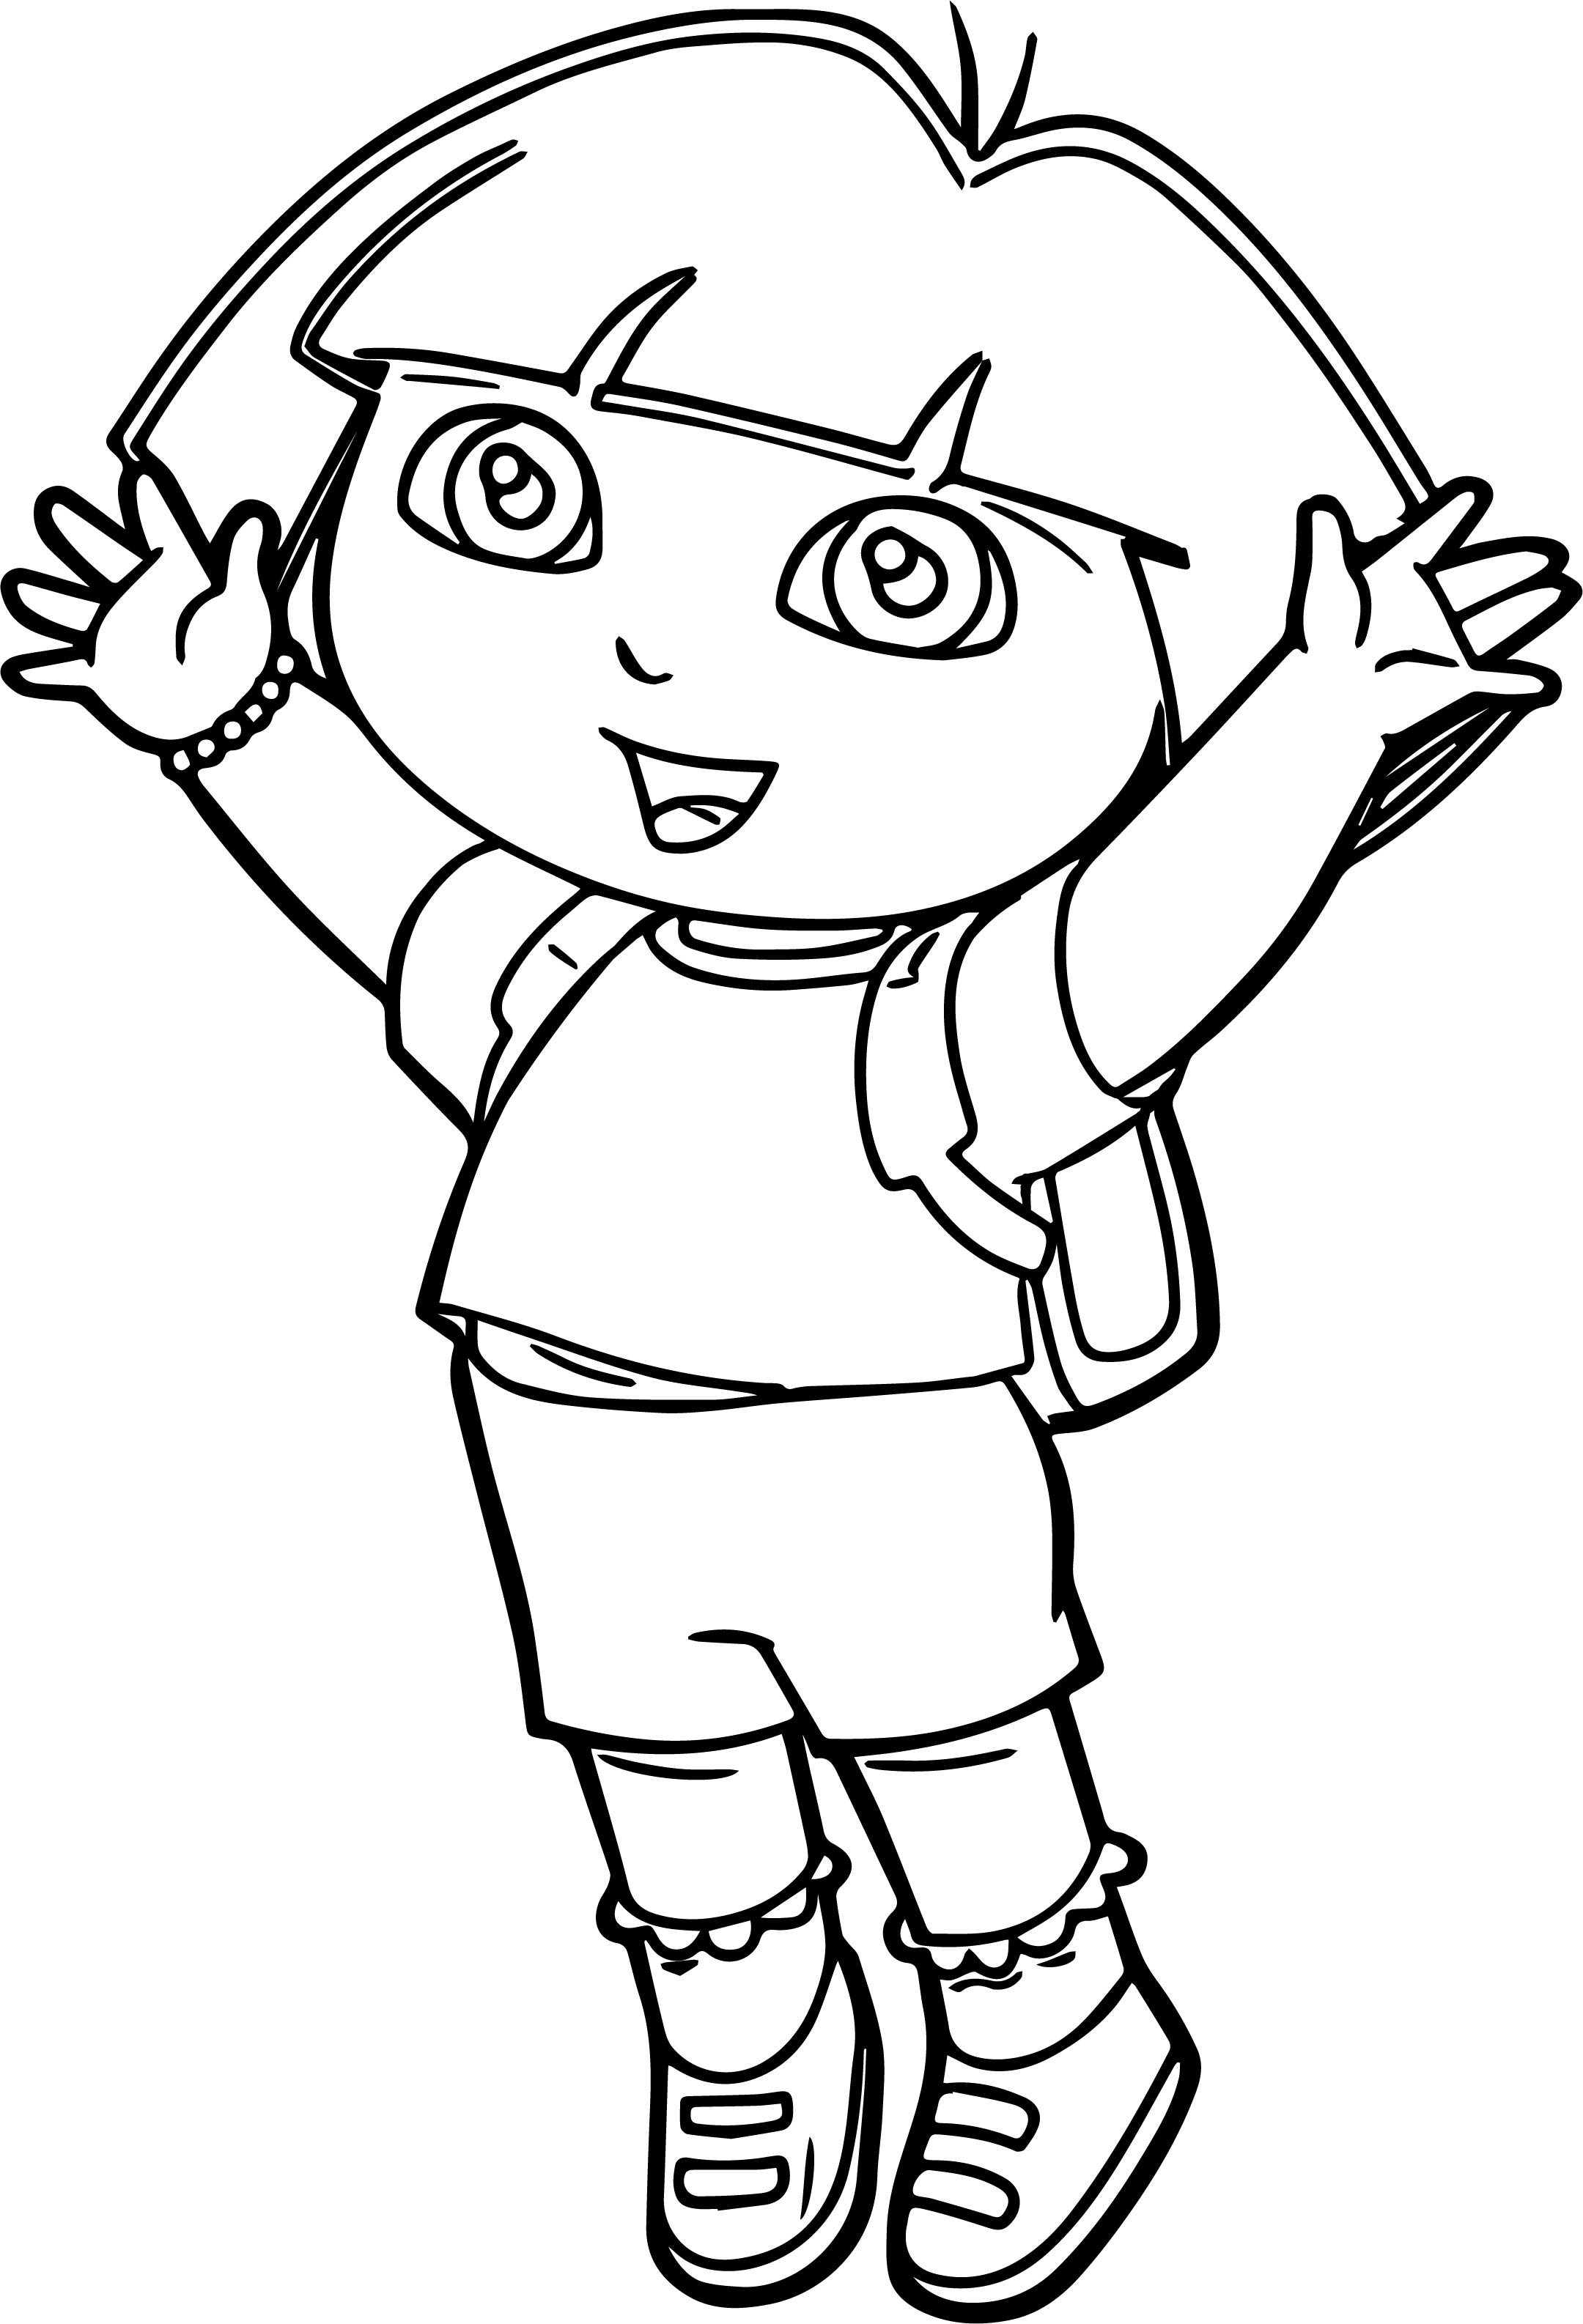 Dora The Explorer Jump Coloring Page